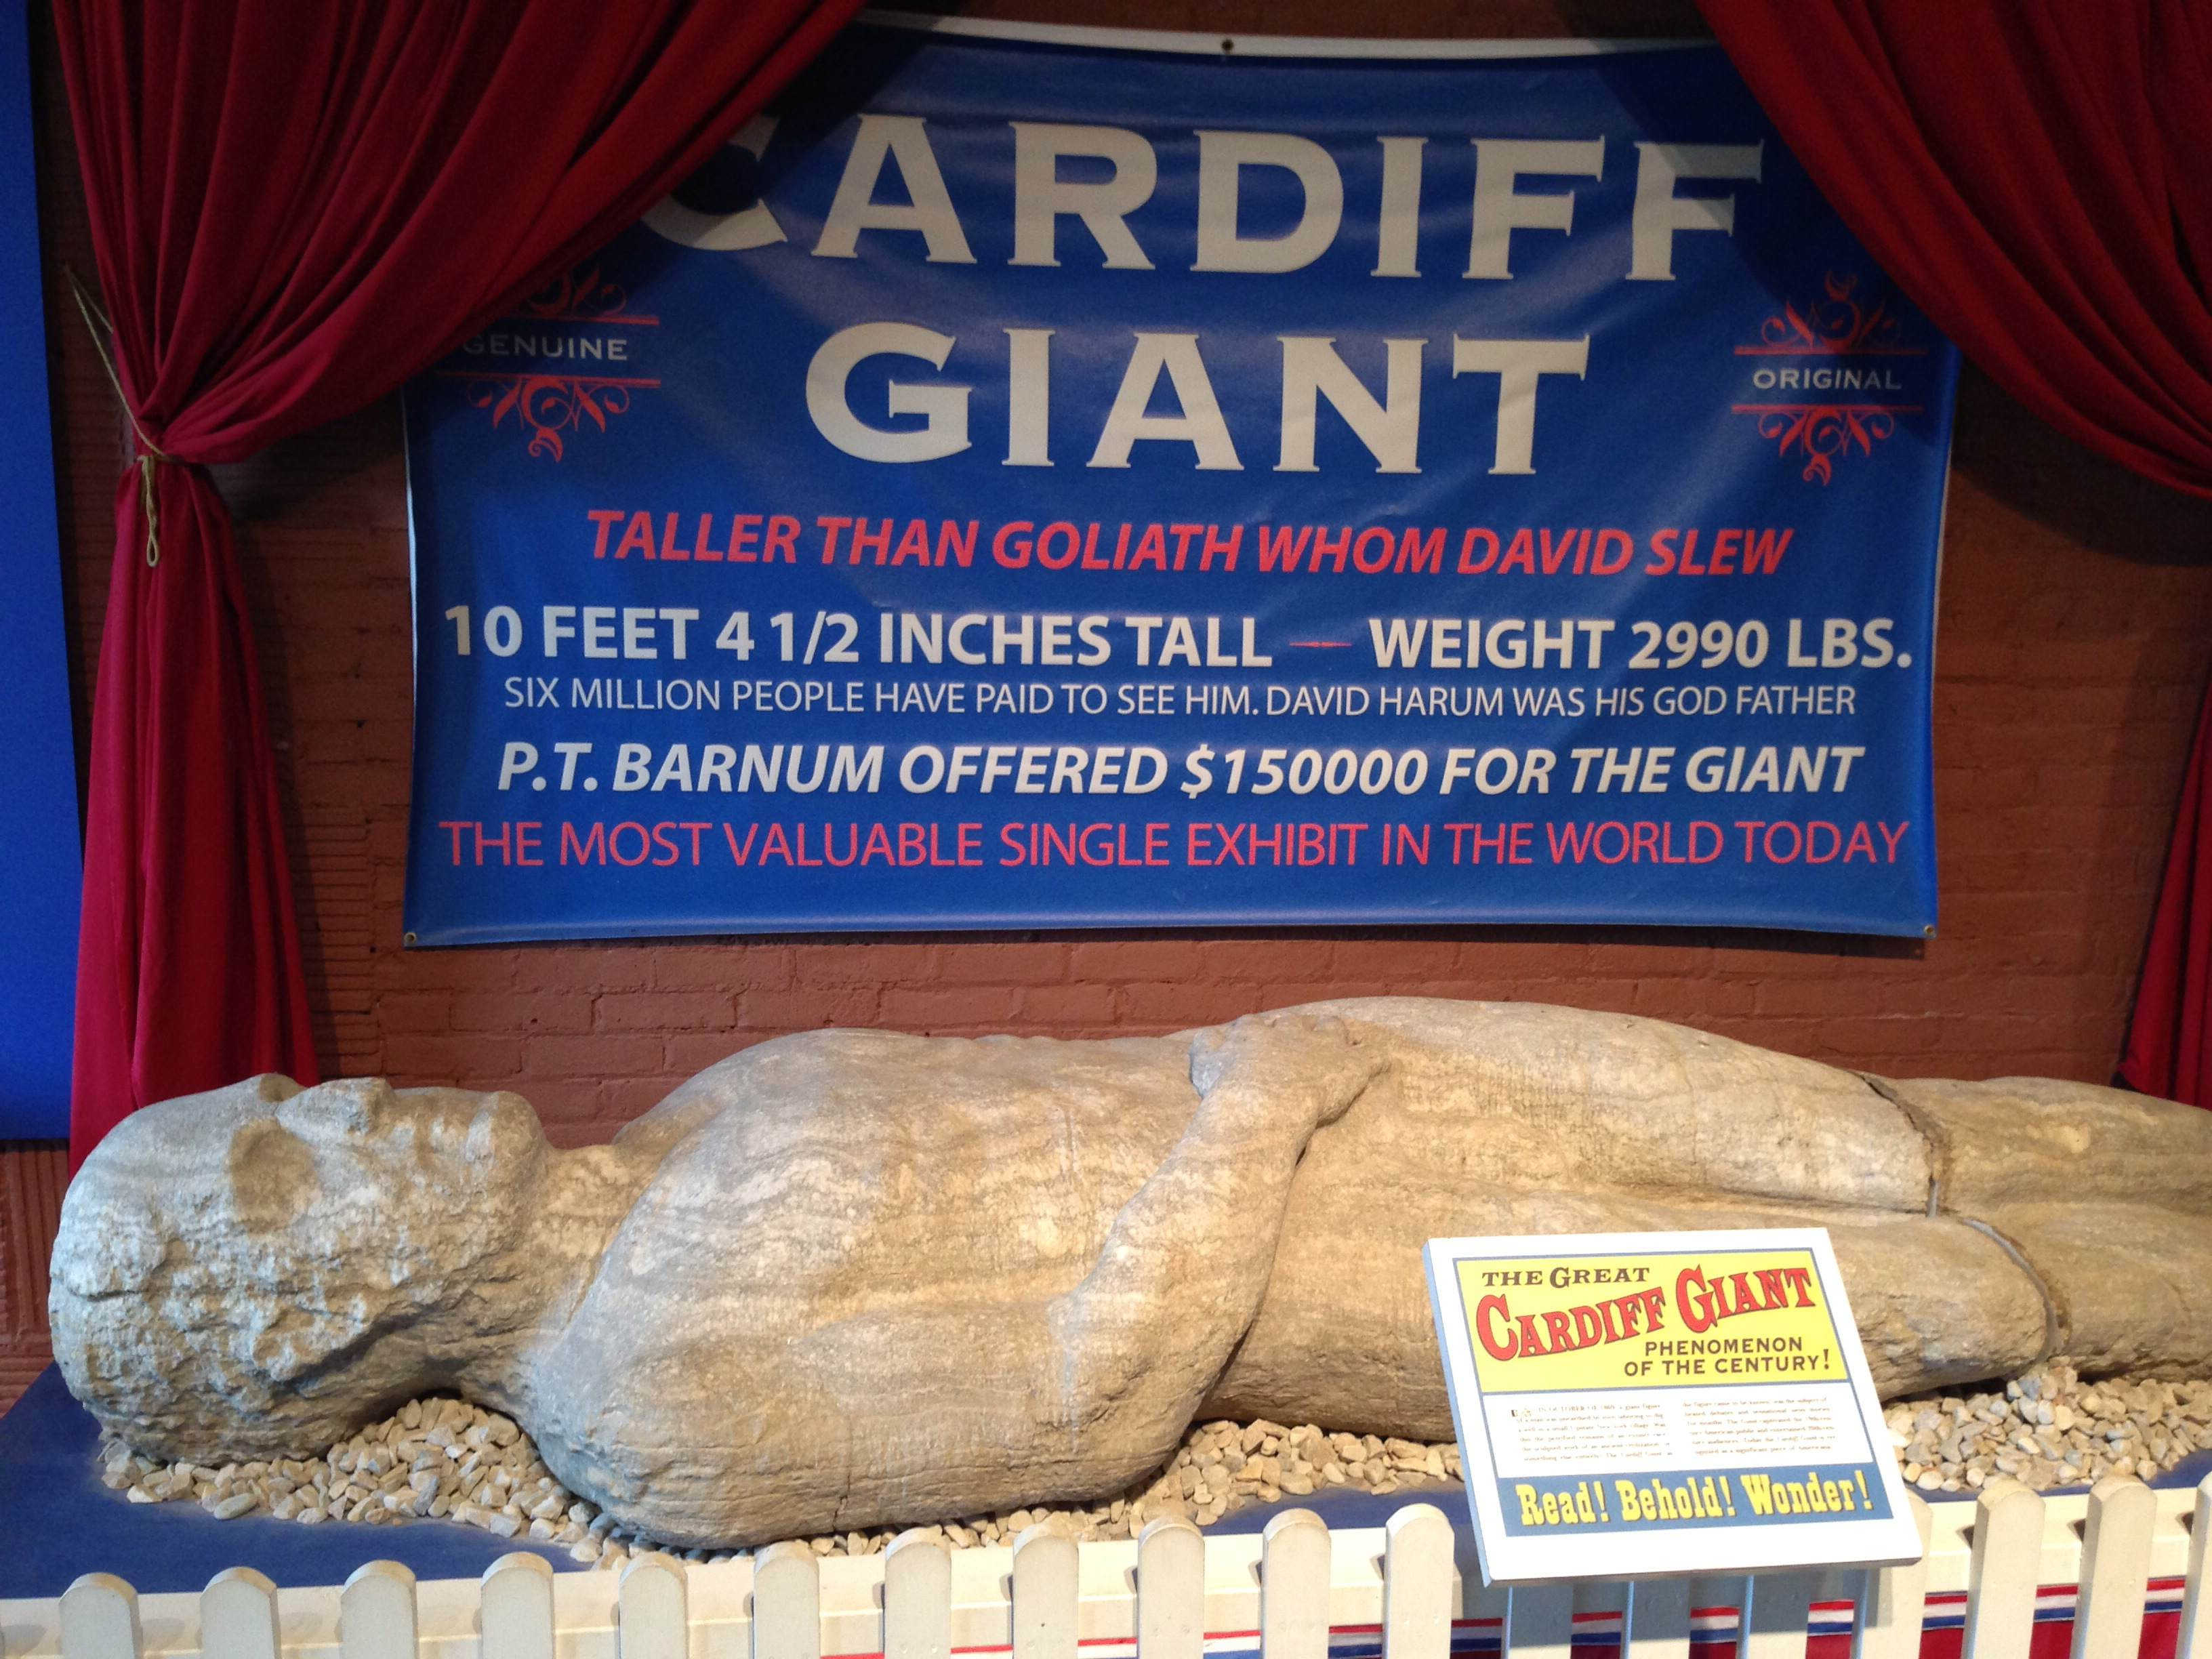 cardiff giant today